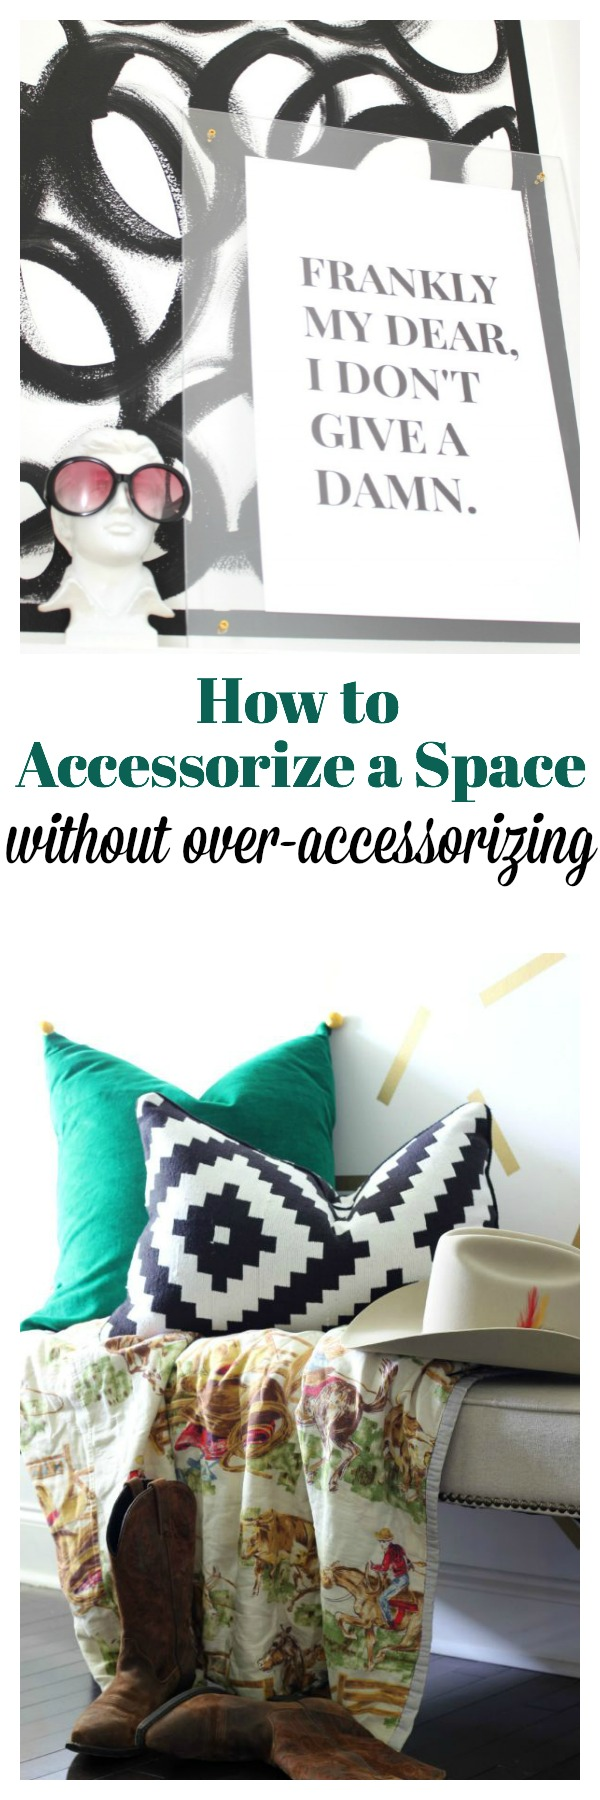 How to Accessorize Your Home | Decorating Ideas for the Home | Decorating on a Budget | How to Accessorize Your Living Room | DIY Decorating